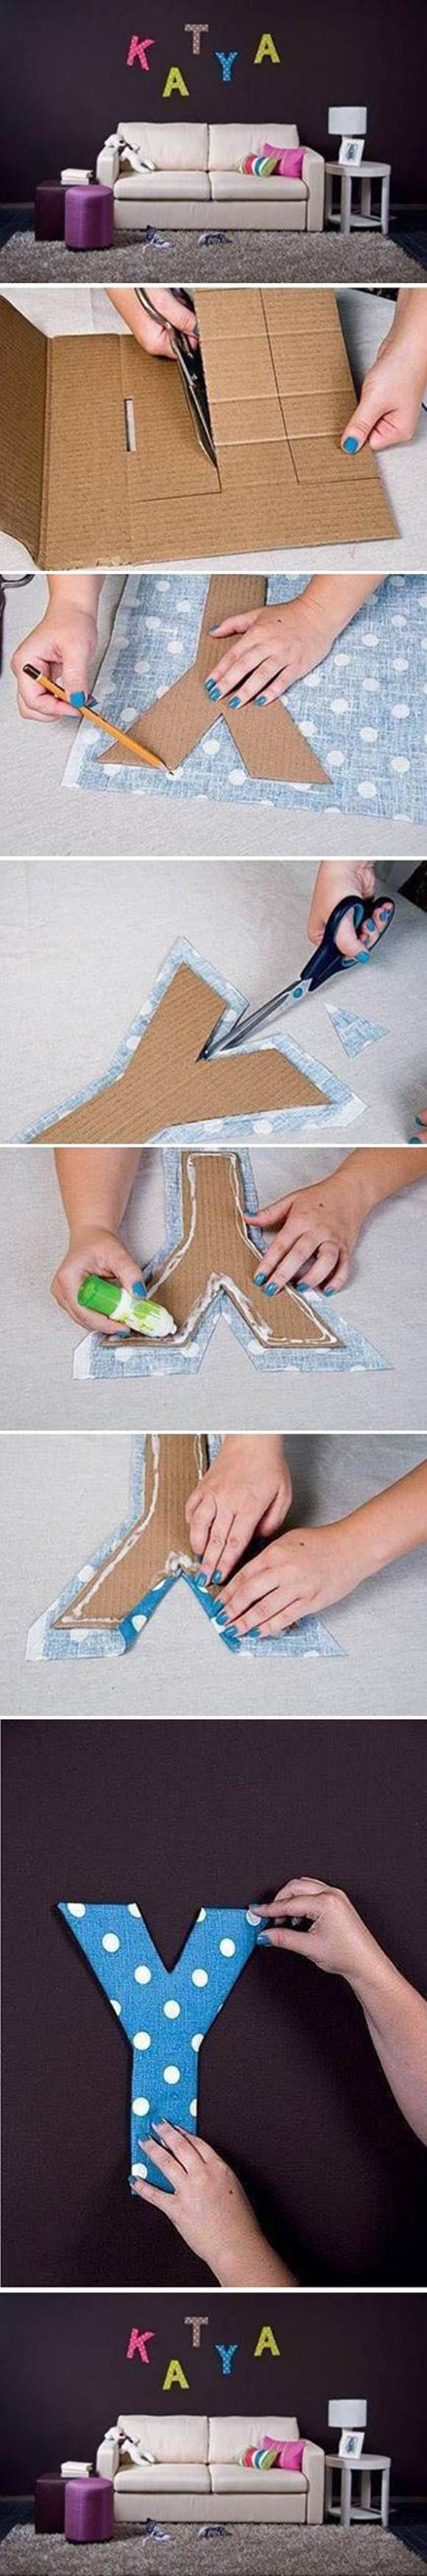 How to DIY Easy Letter Wall Decals #DIY #craft #decoration